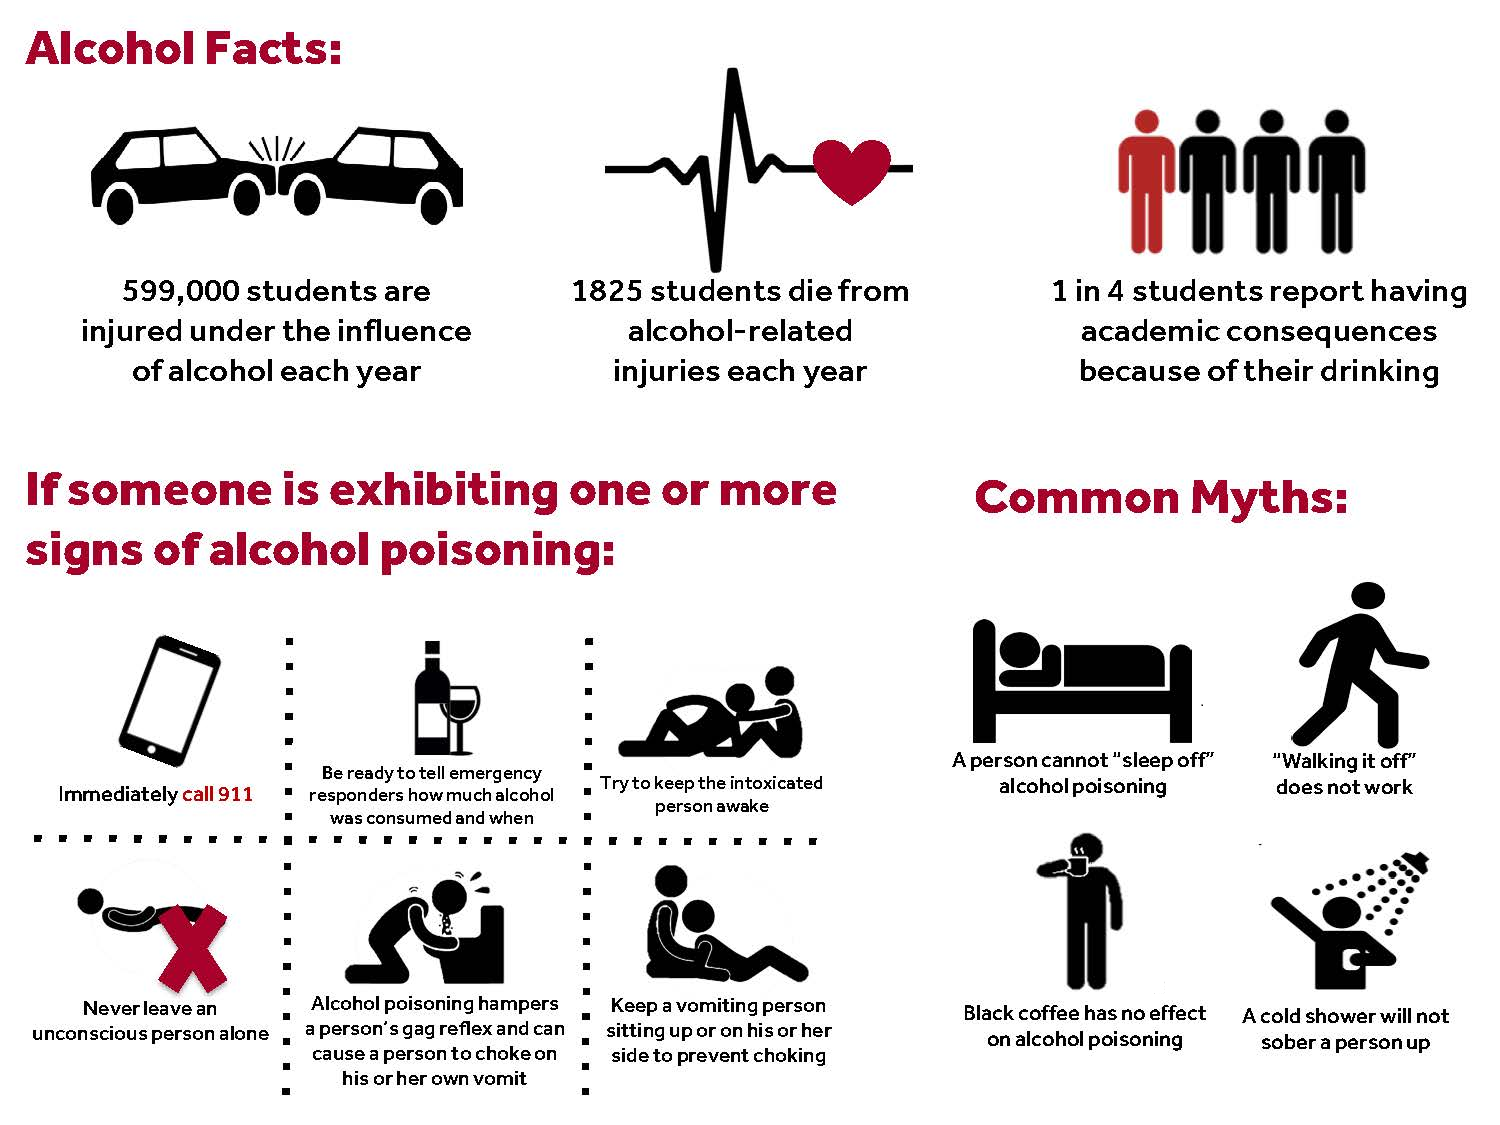 Alchohol Facts